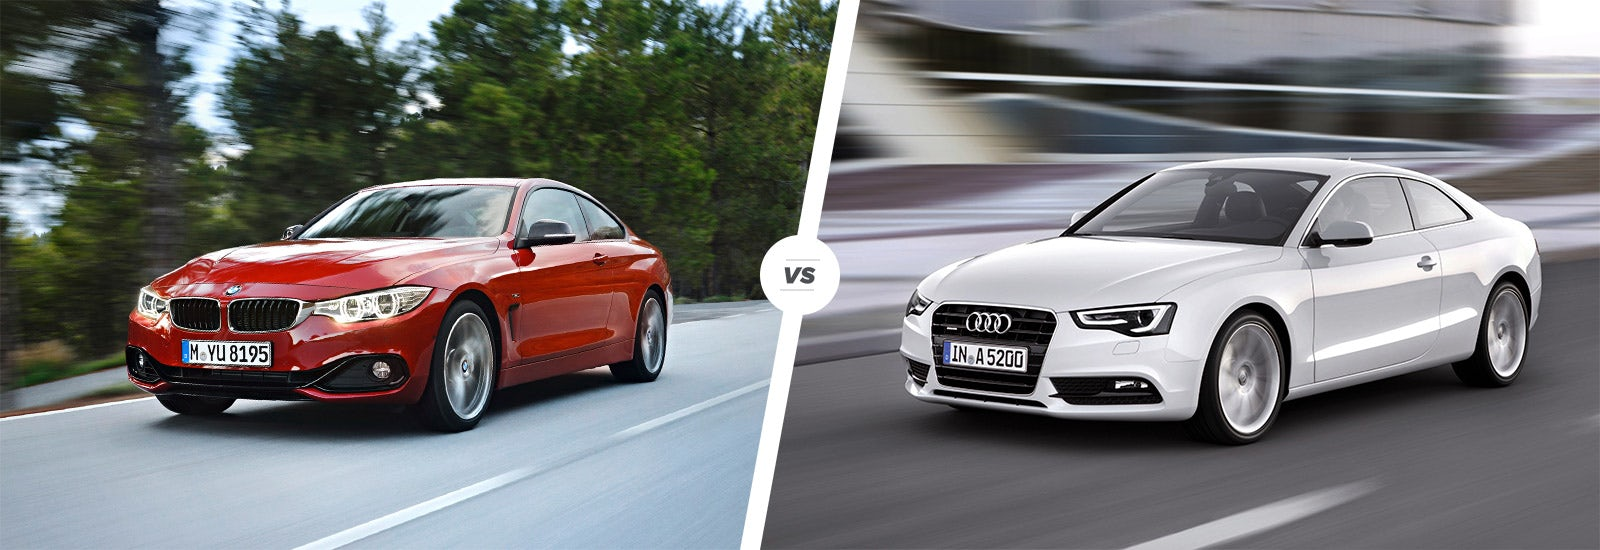 BMW 5 Series audi a5 vs bmw 5 series BMW 4 Series vs Audi A5 side-by-side comparison | carwow